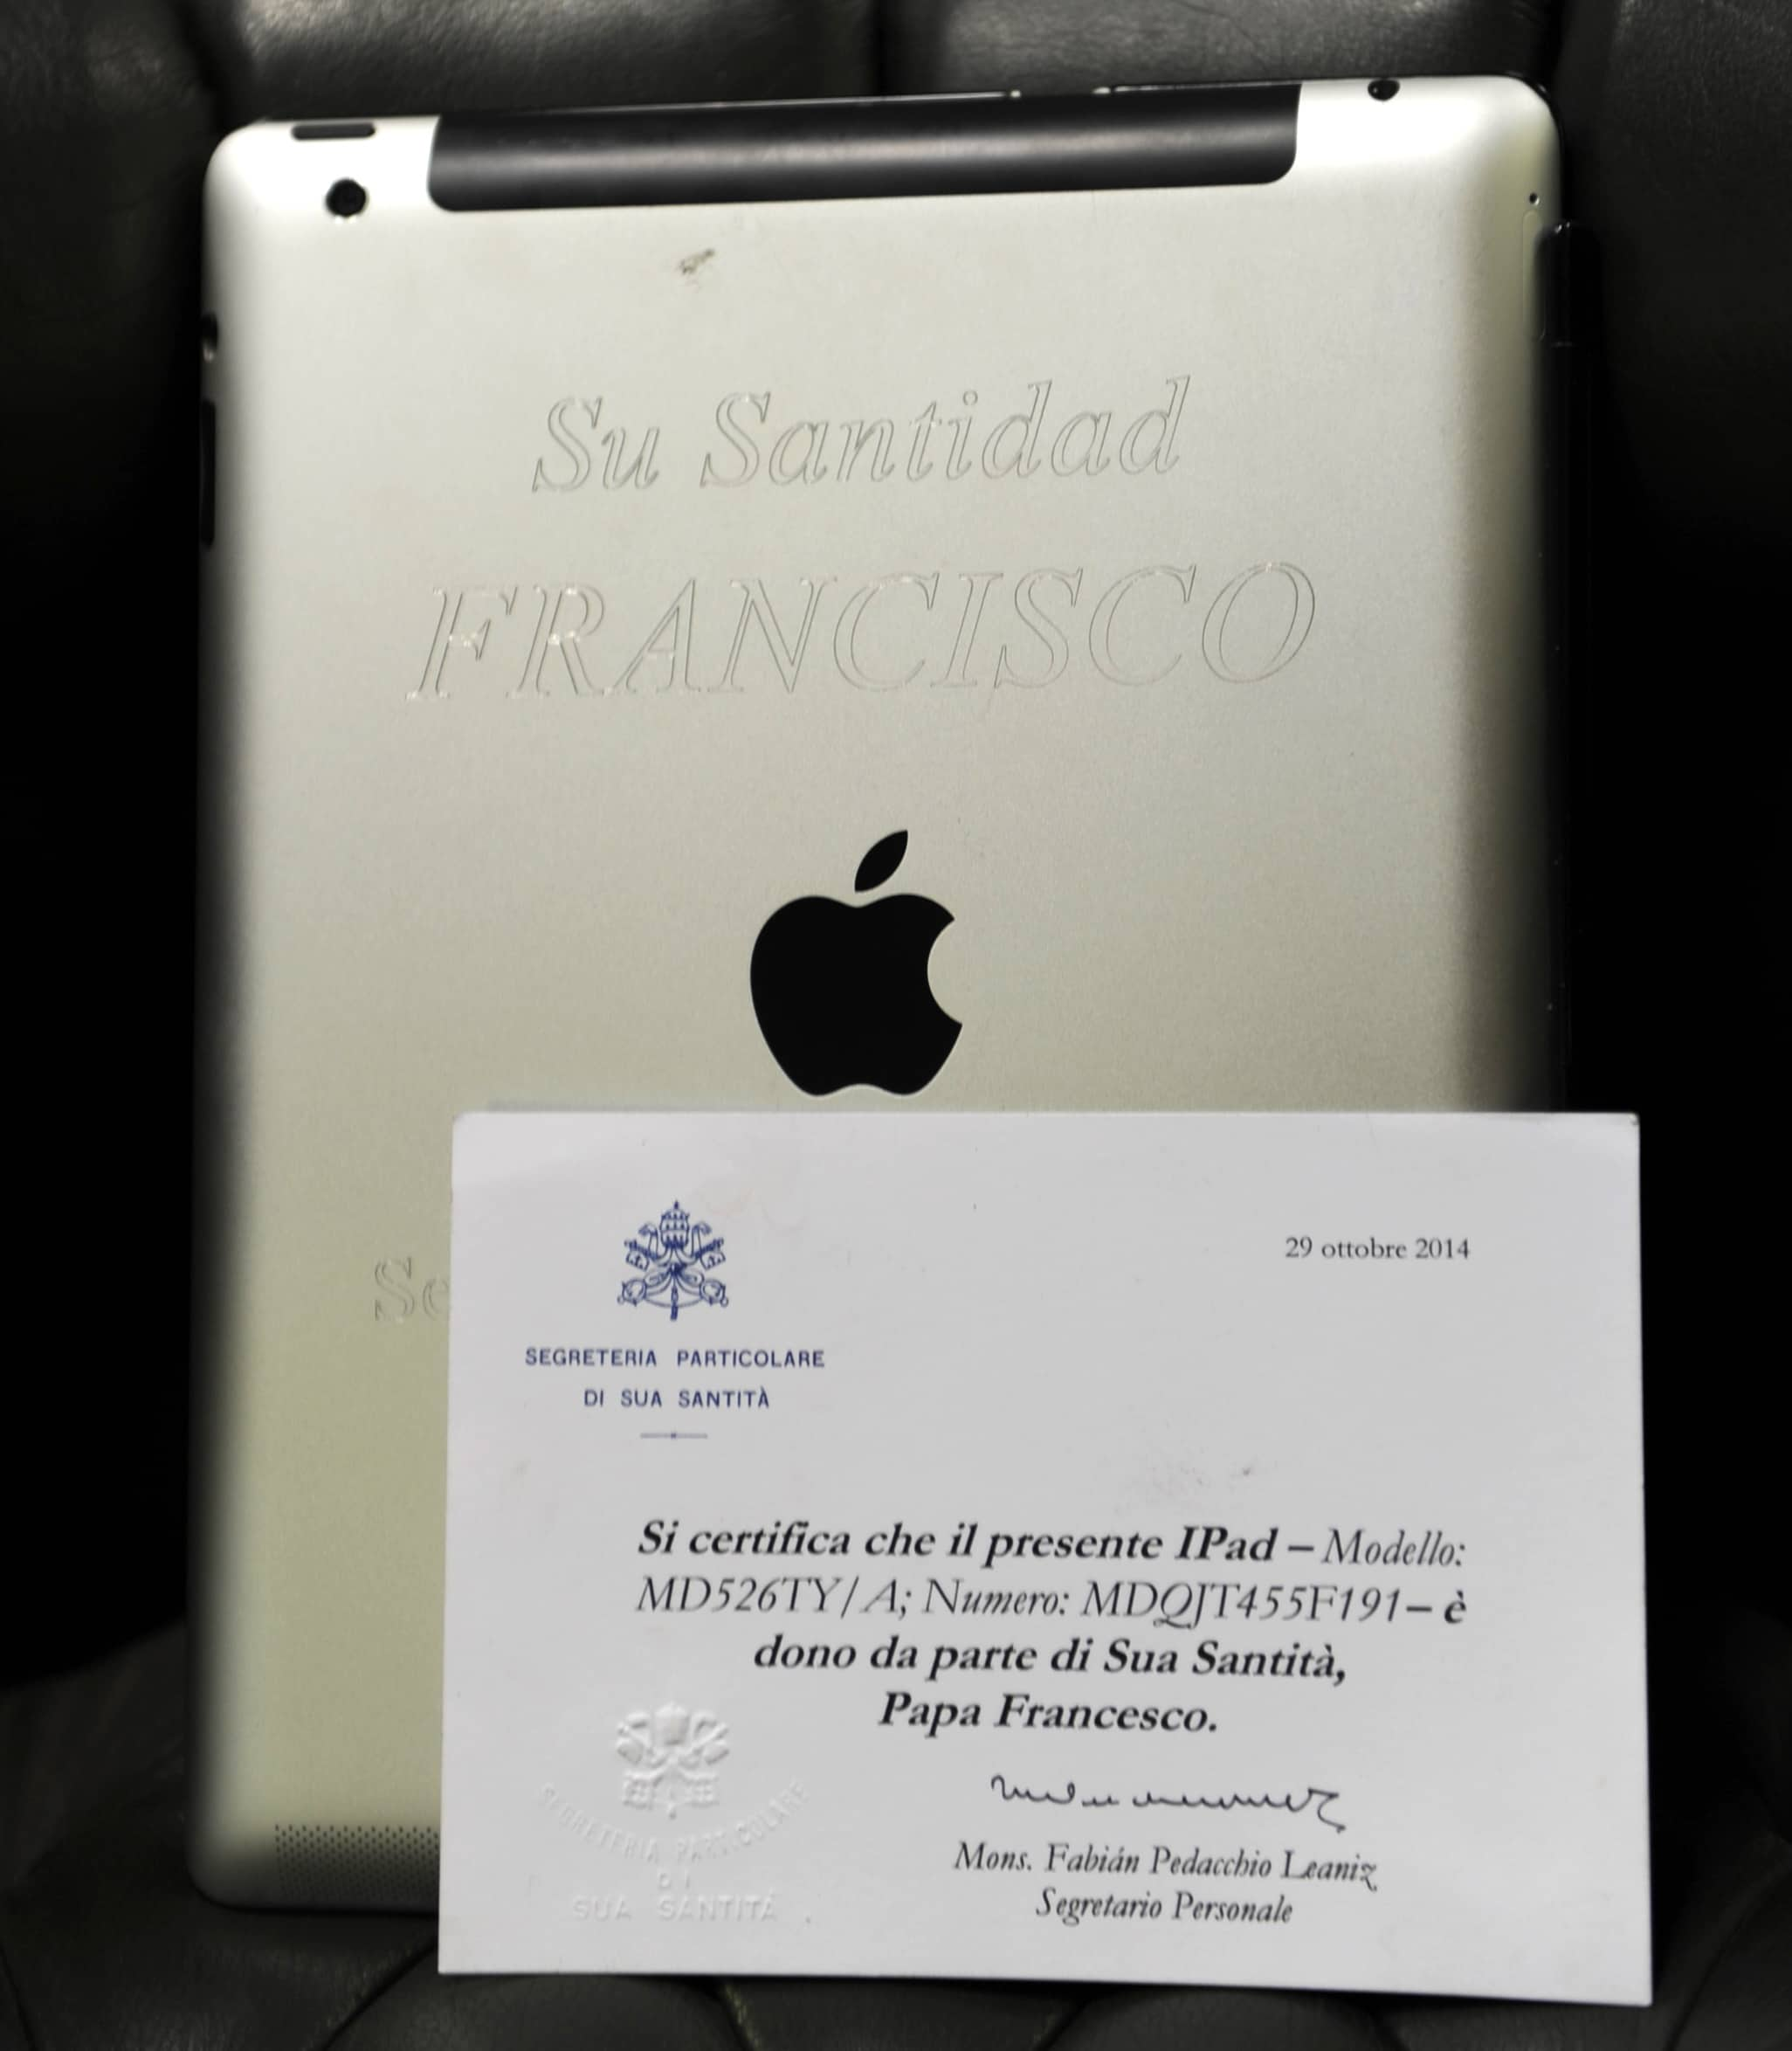 The Pope's iPad was auctioned for charity on April 14, 2015 in Montevideo.